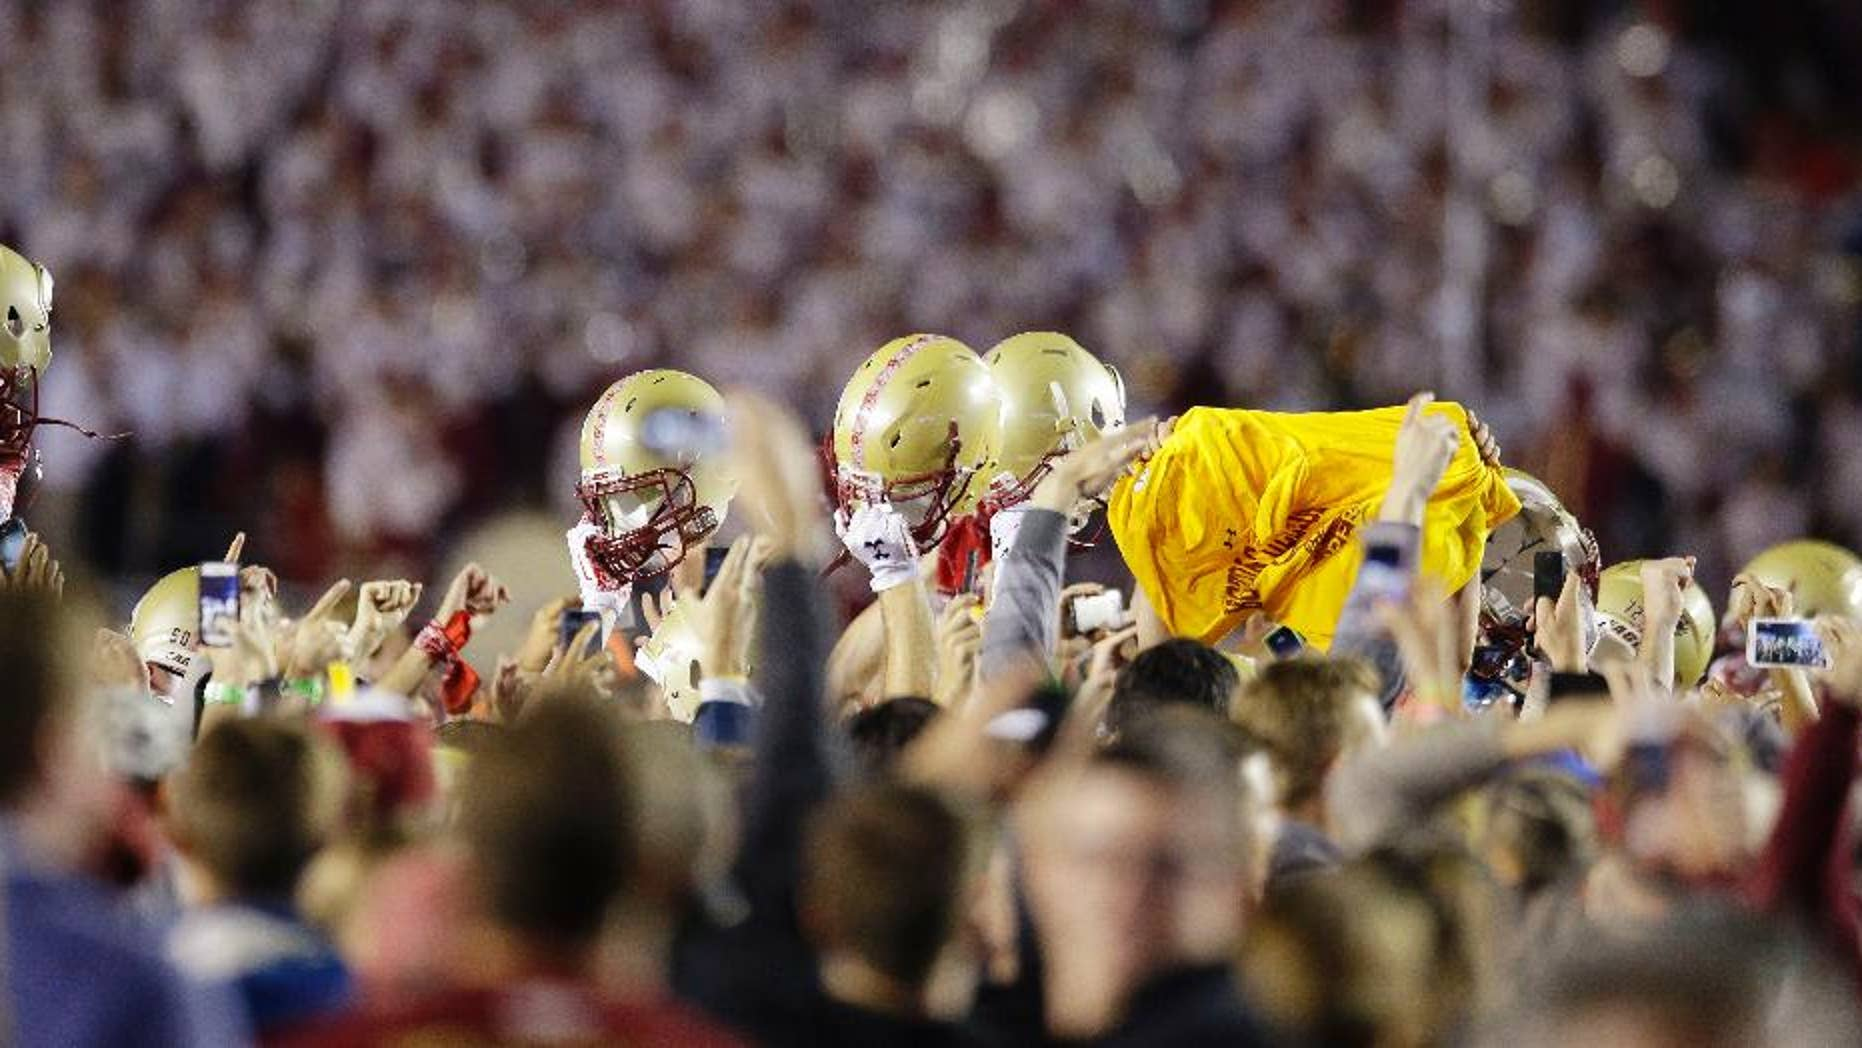 Celebrating members of the Boston College team, holding their helmets above their heads, are surrounded by celebrating fans after they defeated Southern California in their NCAA college football game Saturday, Sept. 13, 2014 in Boston. Boston College defeated USC 37-3. (AP Photo/Stephan Savoia)